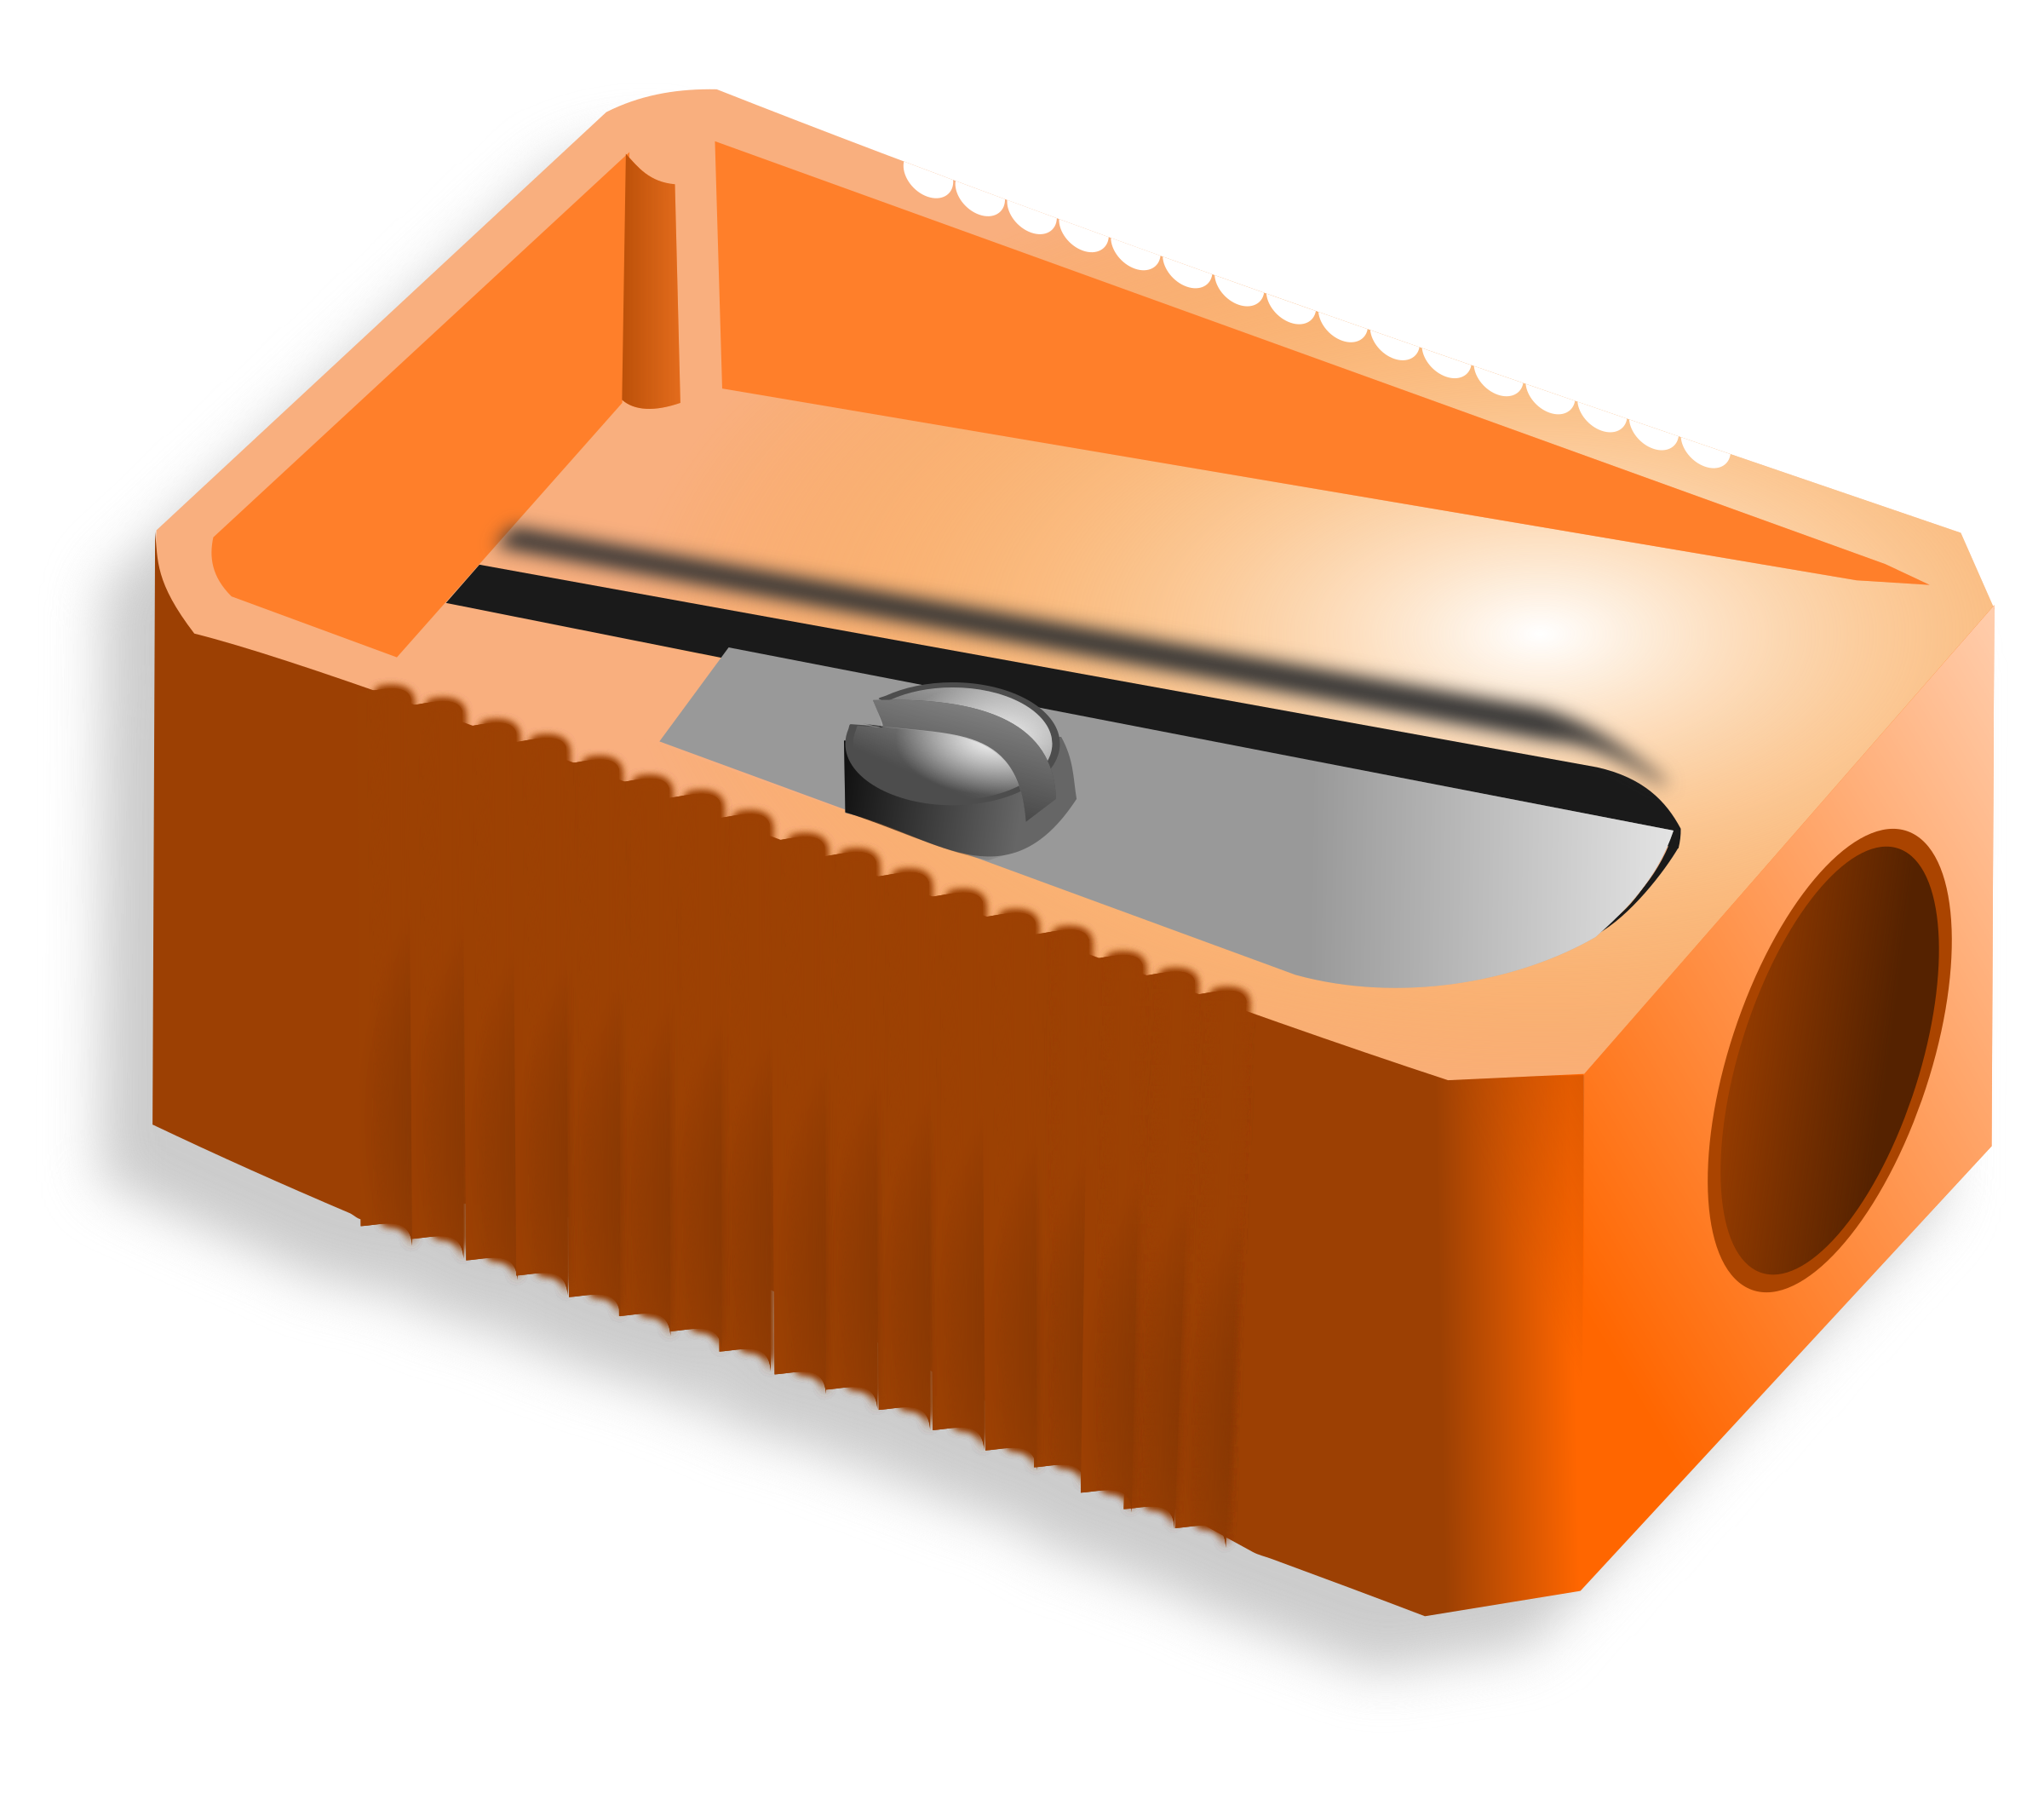 jpg royalty free download Sharpener clipart. Pencil big image png.